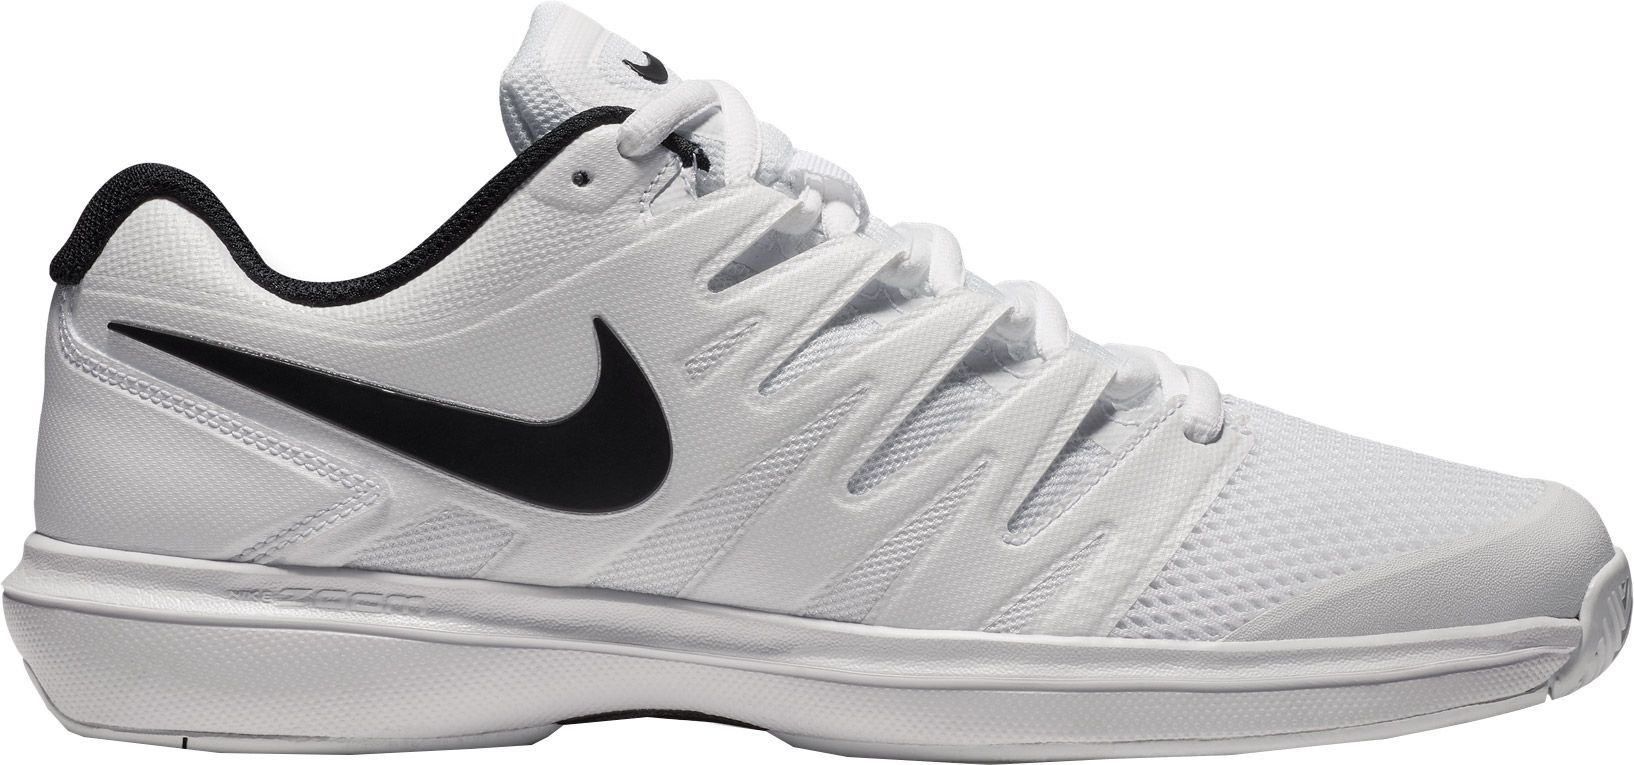 brand new 223b6 40d79 Nike Men s Air Zoom Prestige Tennis Shoes, Size  9.5, White